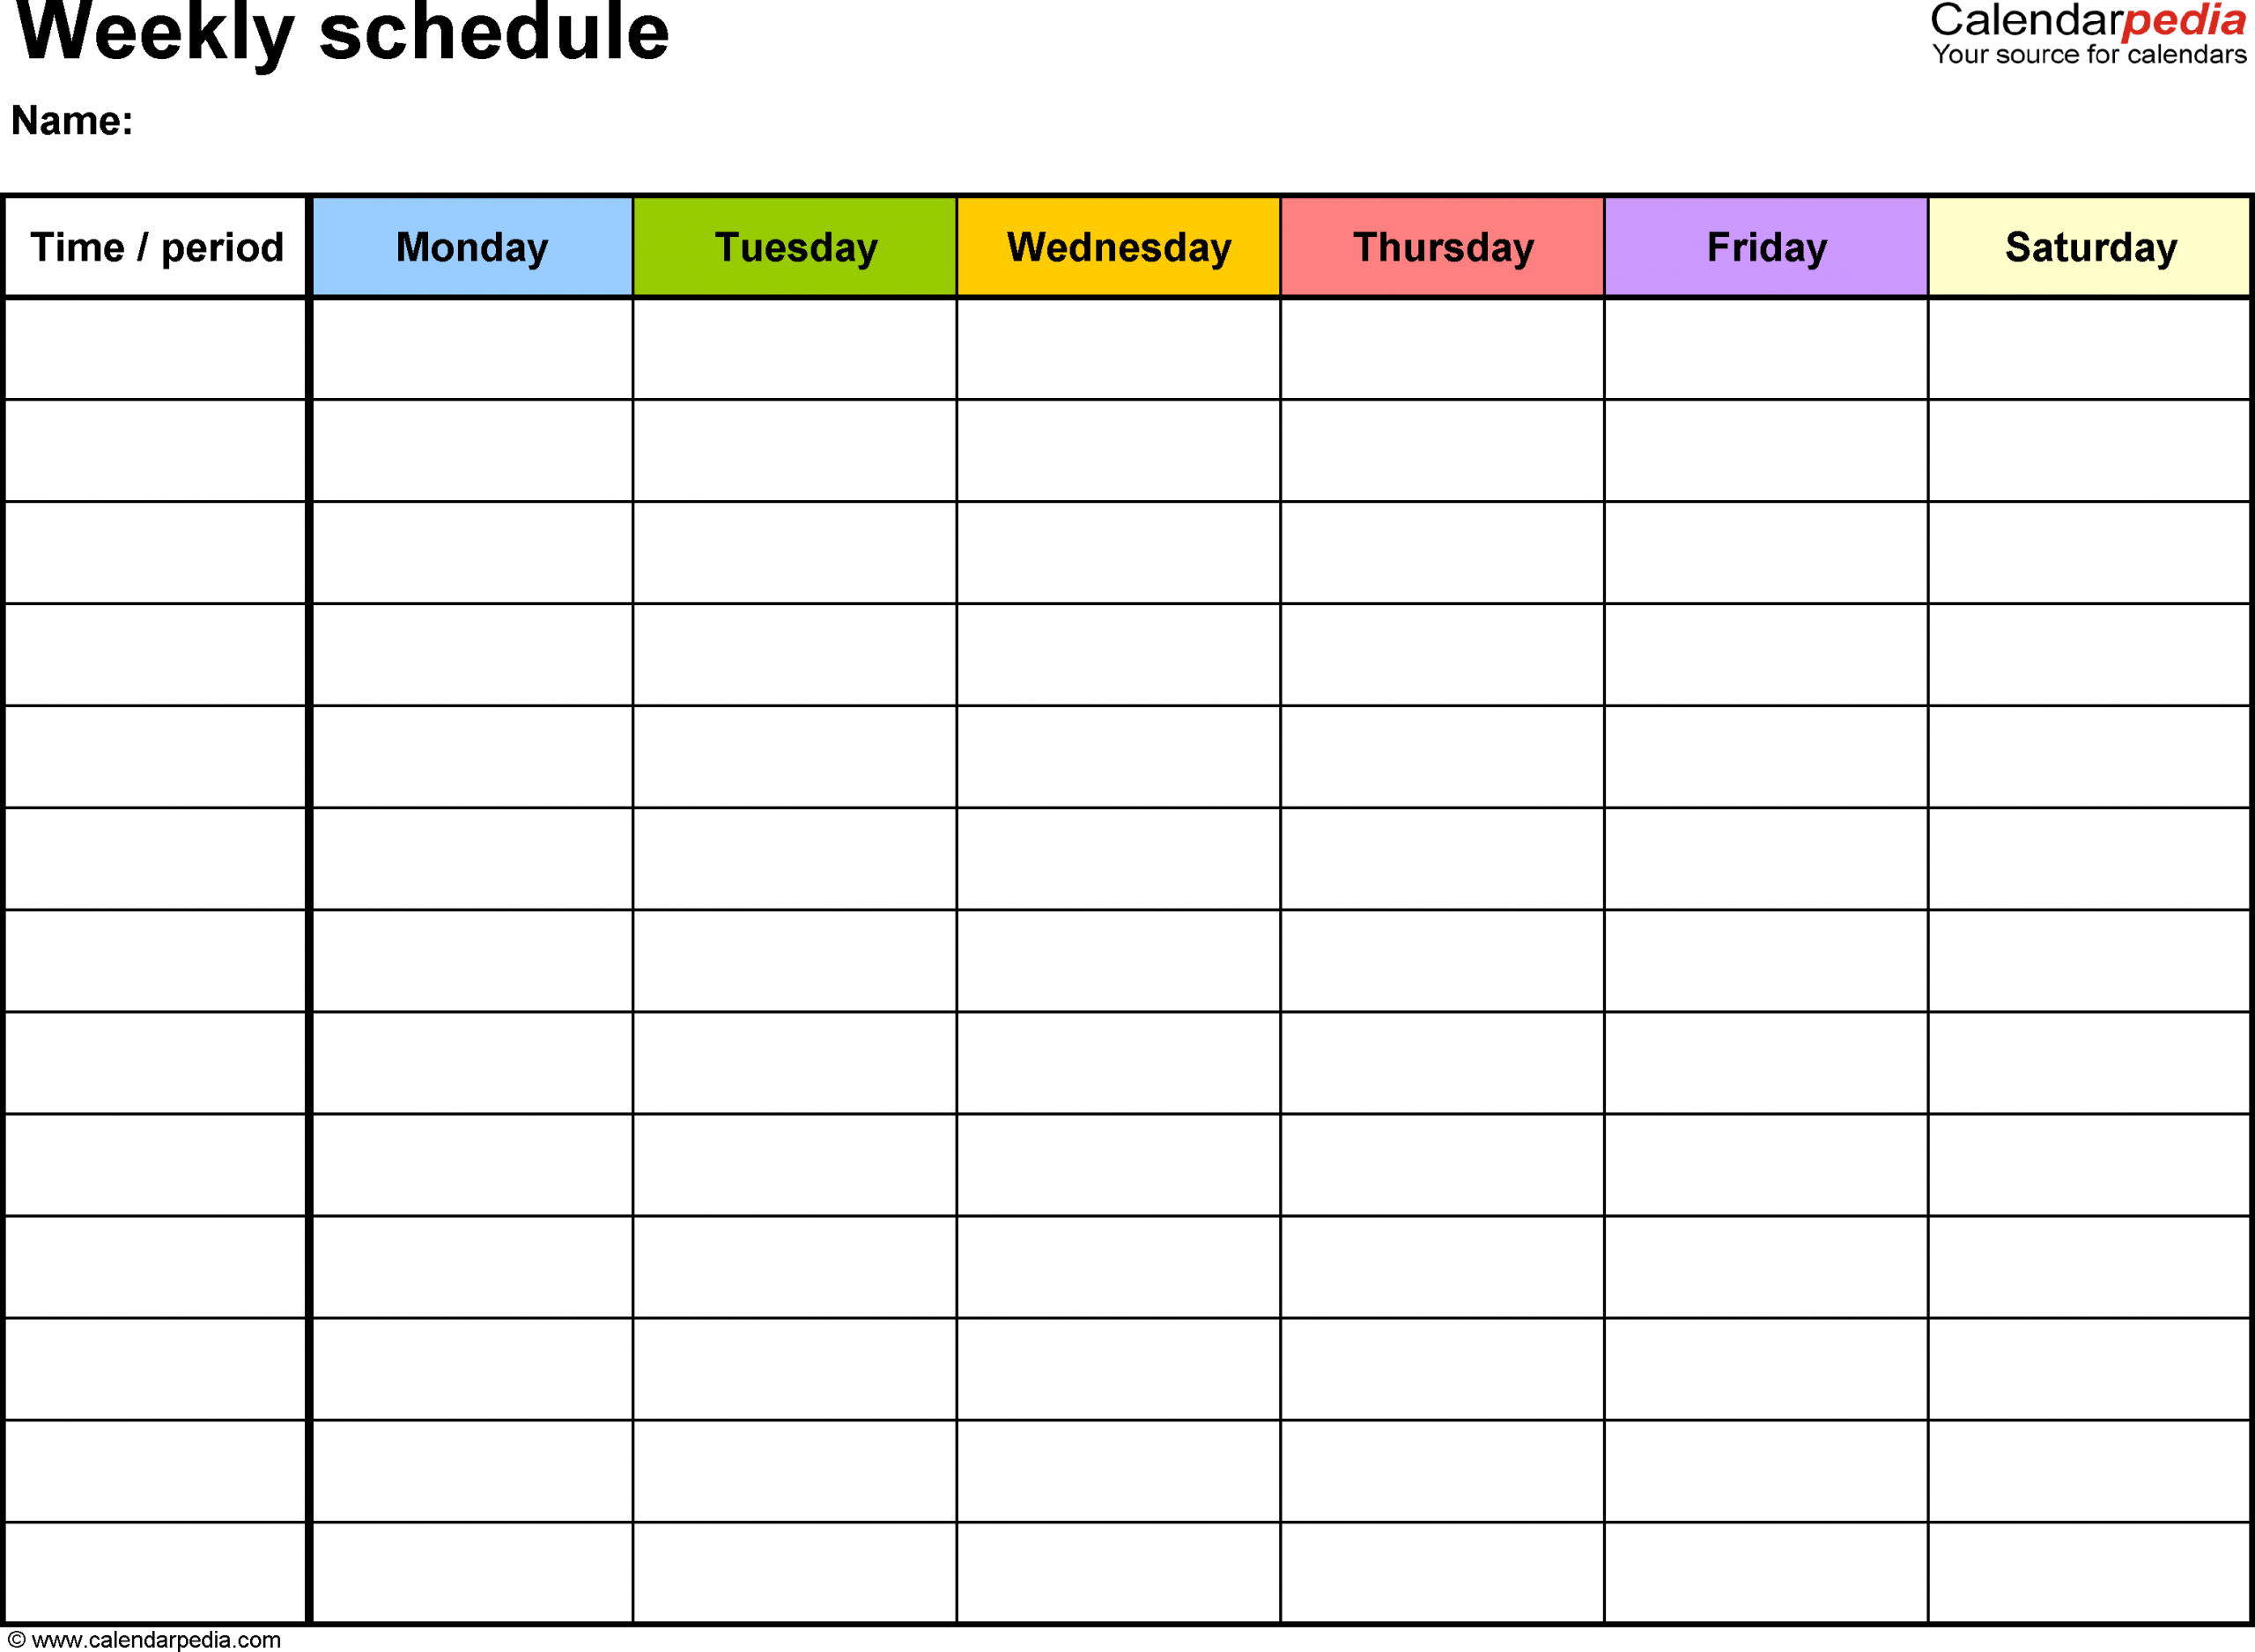 Weekly Schedule Template For Word Version 7 Landscape 1